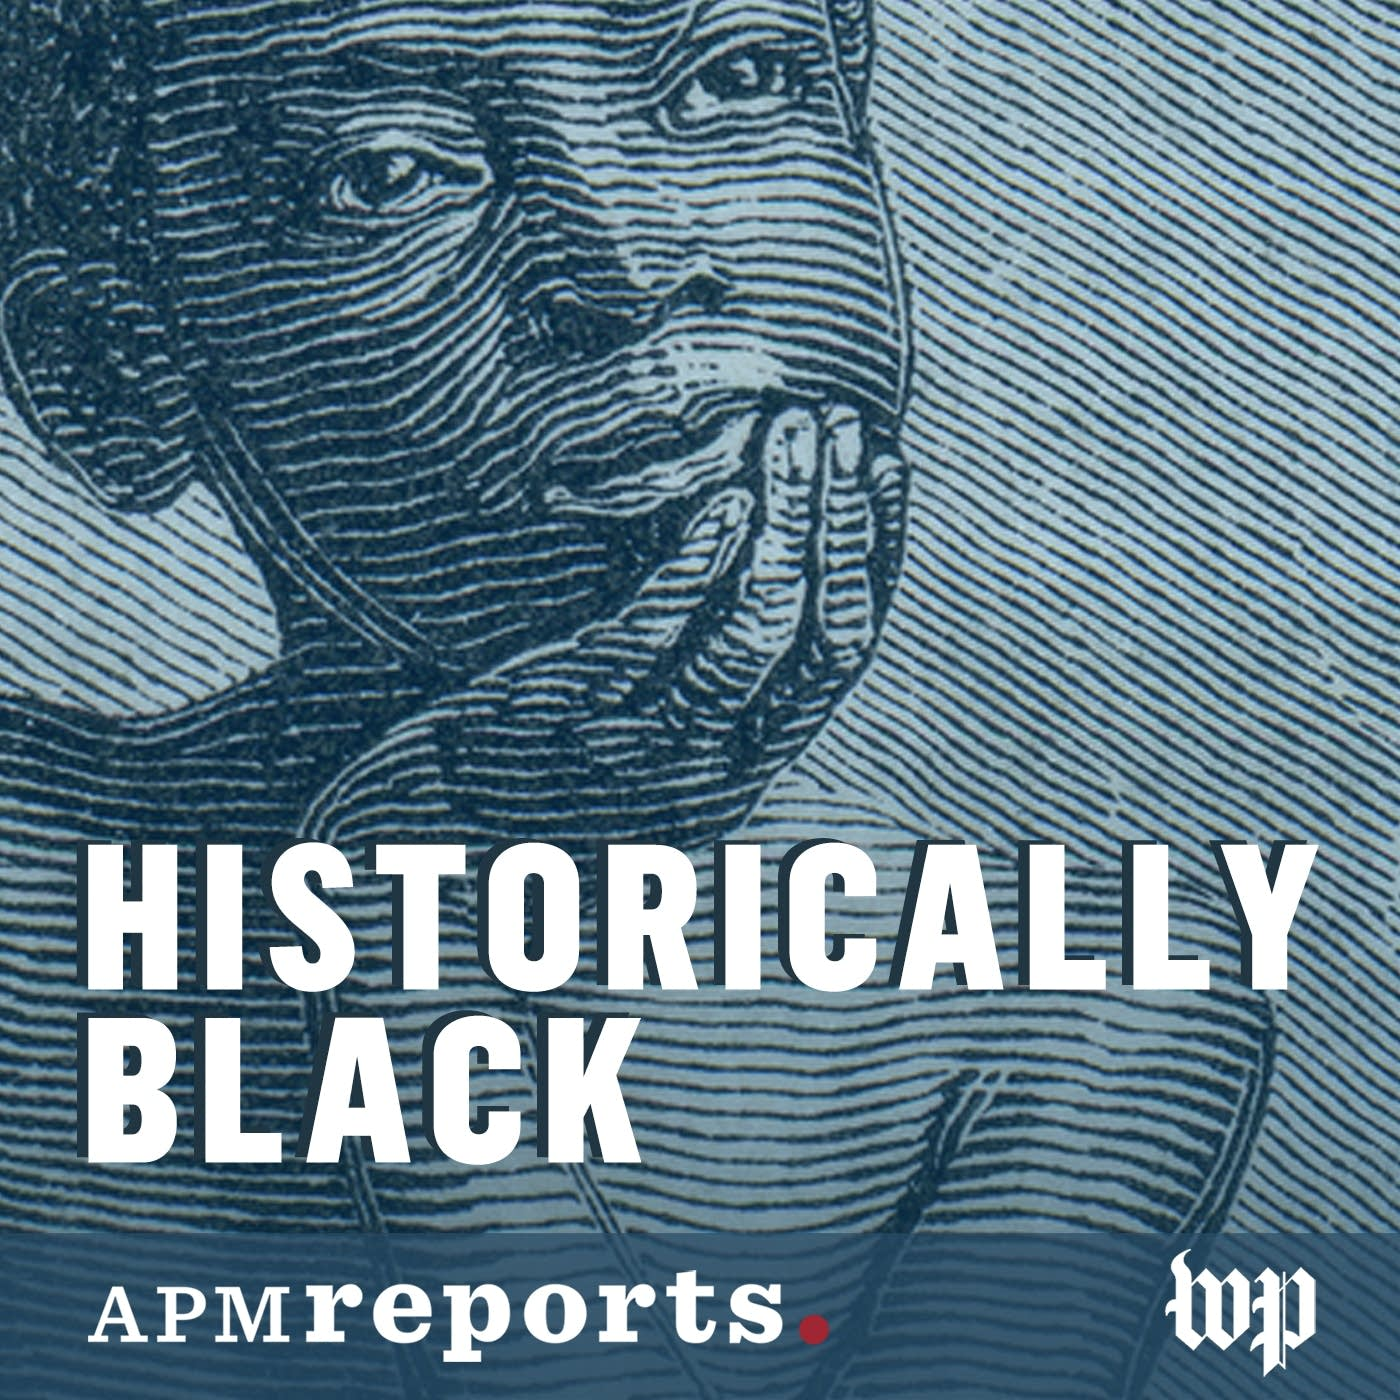 Submit a story to be featured in new podcast Historically Black